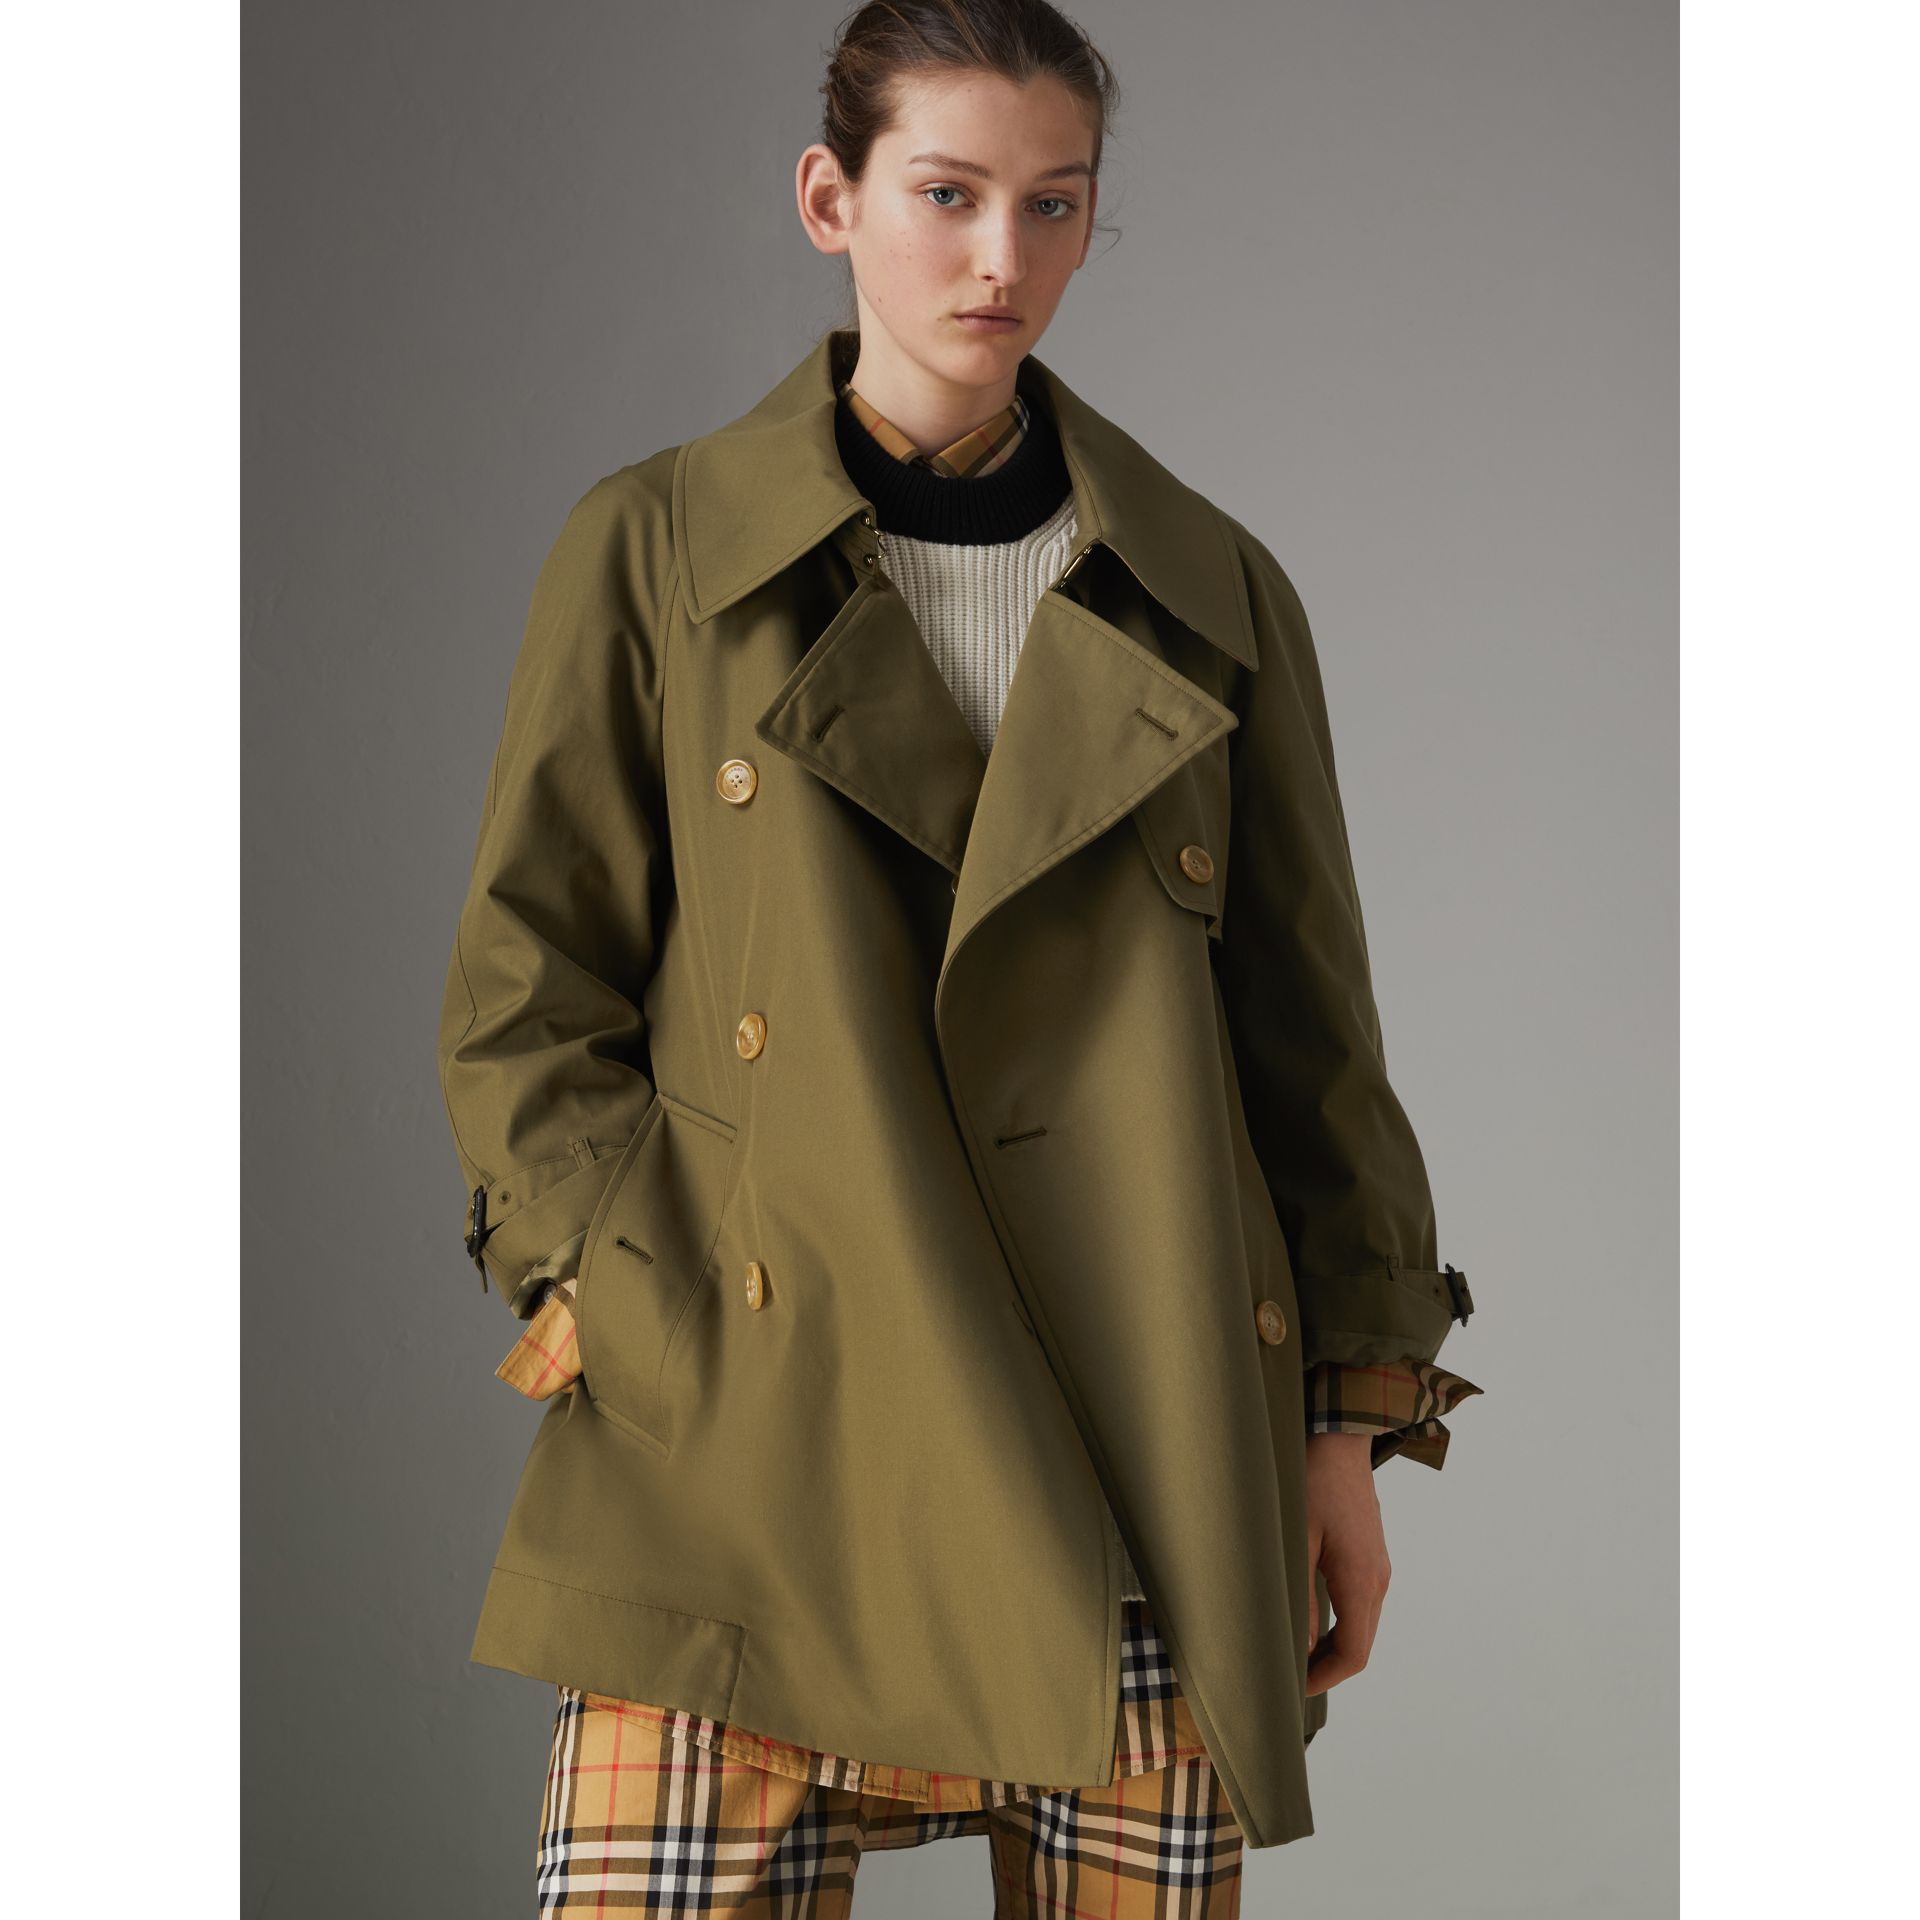 Exaggerated Collar Cotton Gabardine Trench Coat in Military Olive - Women | Burberry Hong Kong - gallery image 5